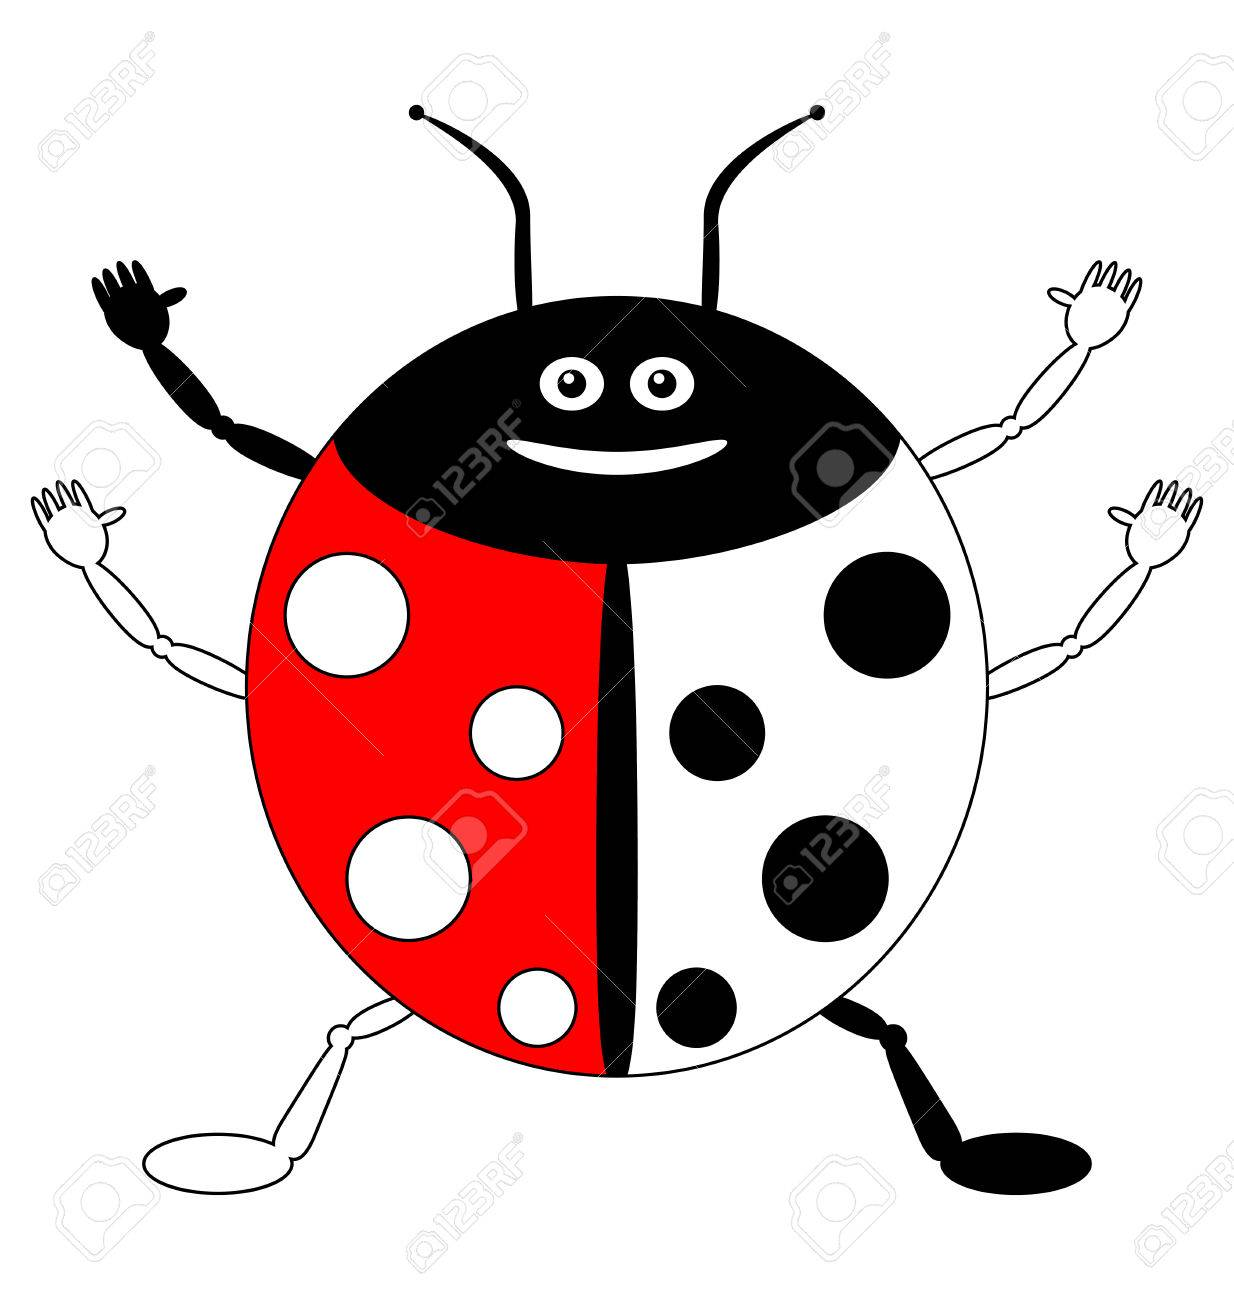 Color By Example, Insects - Cute Smiling Ladybird Royalty Free ...